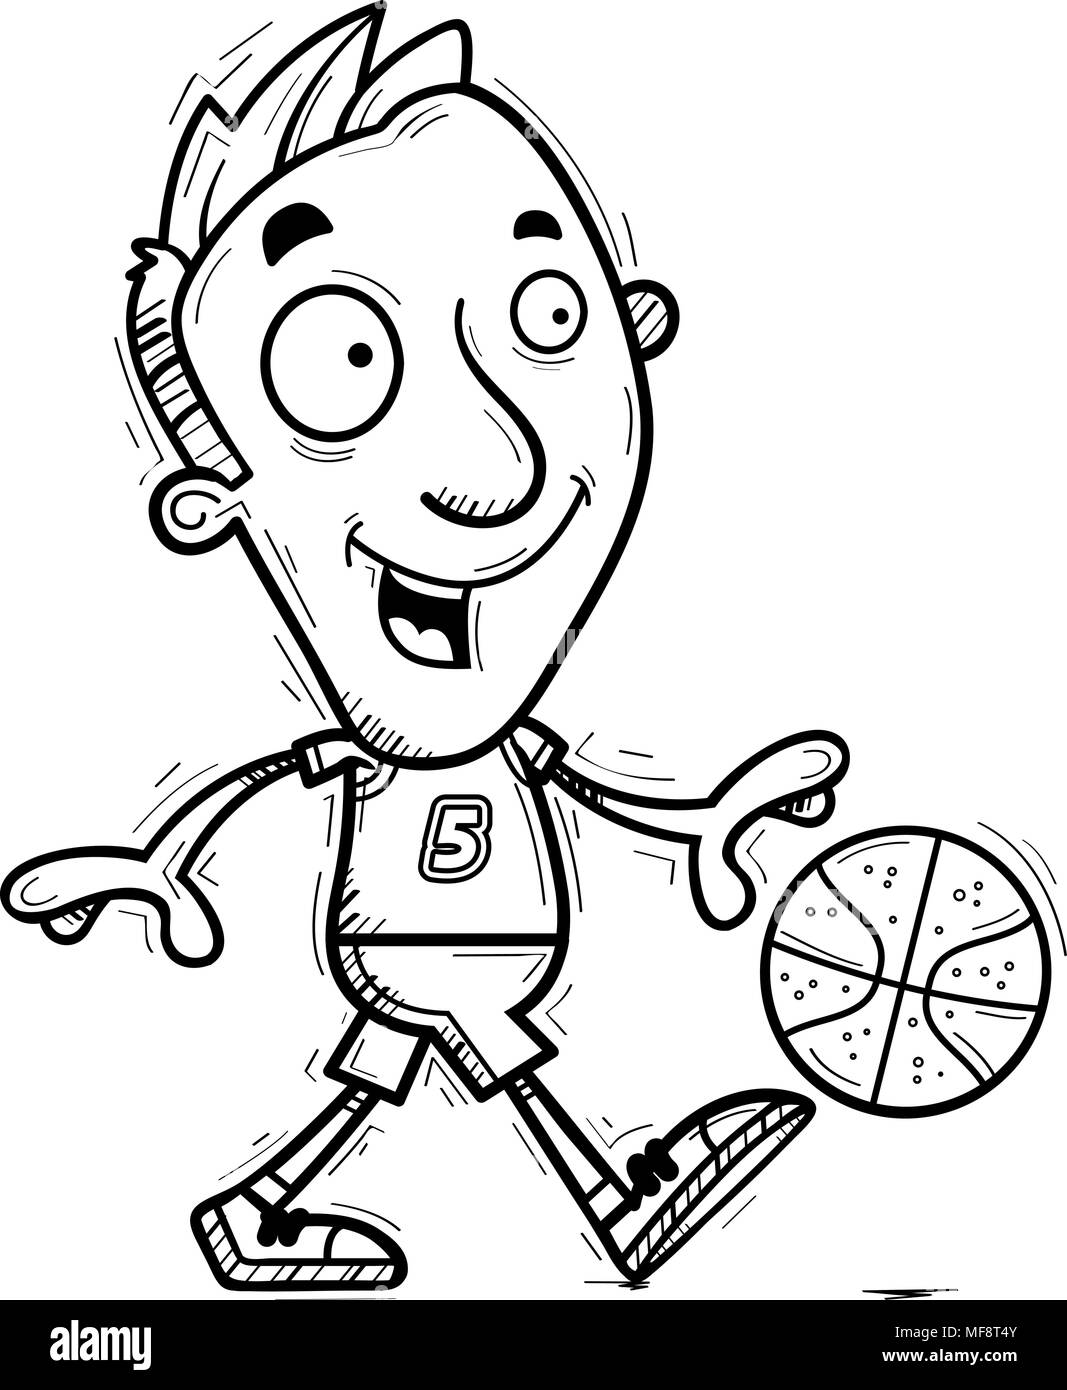 A cartoon illustration of a man basketball player walking. - Stock Image